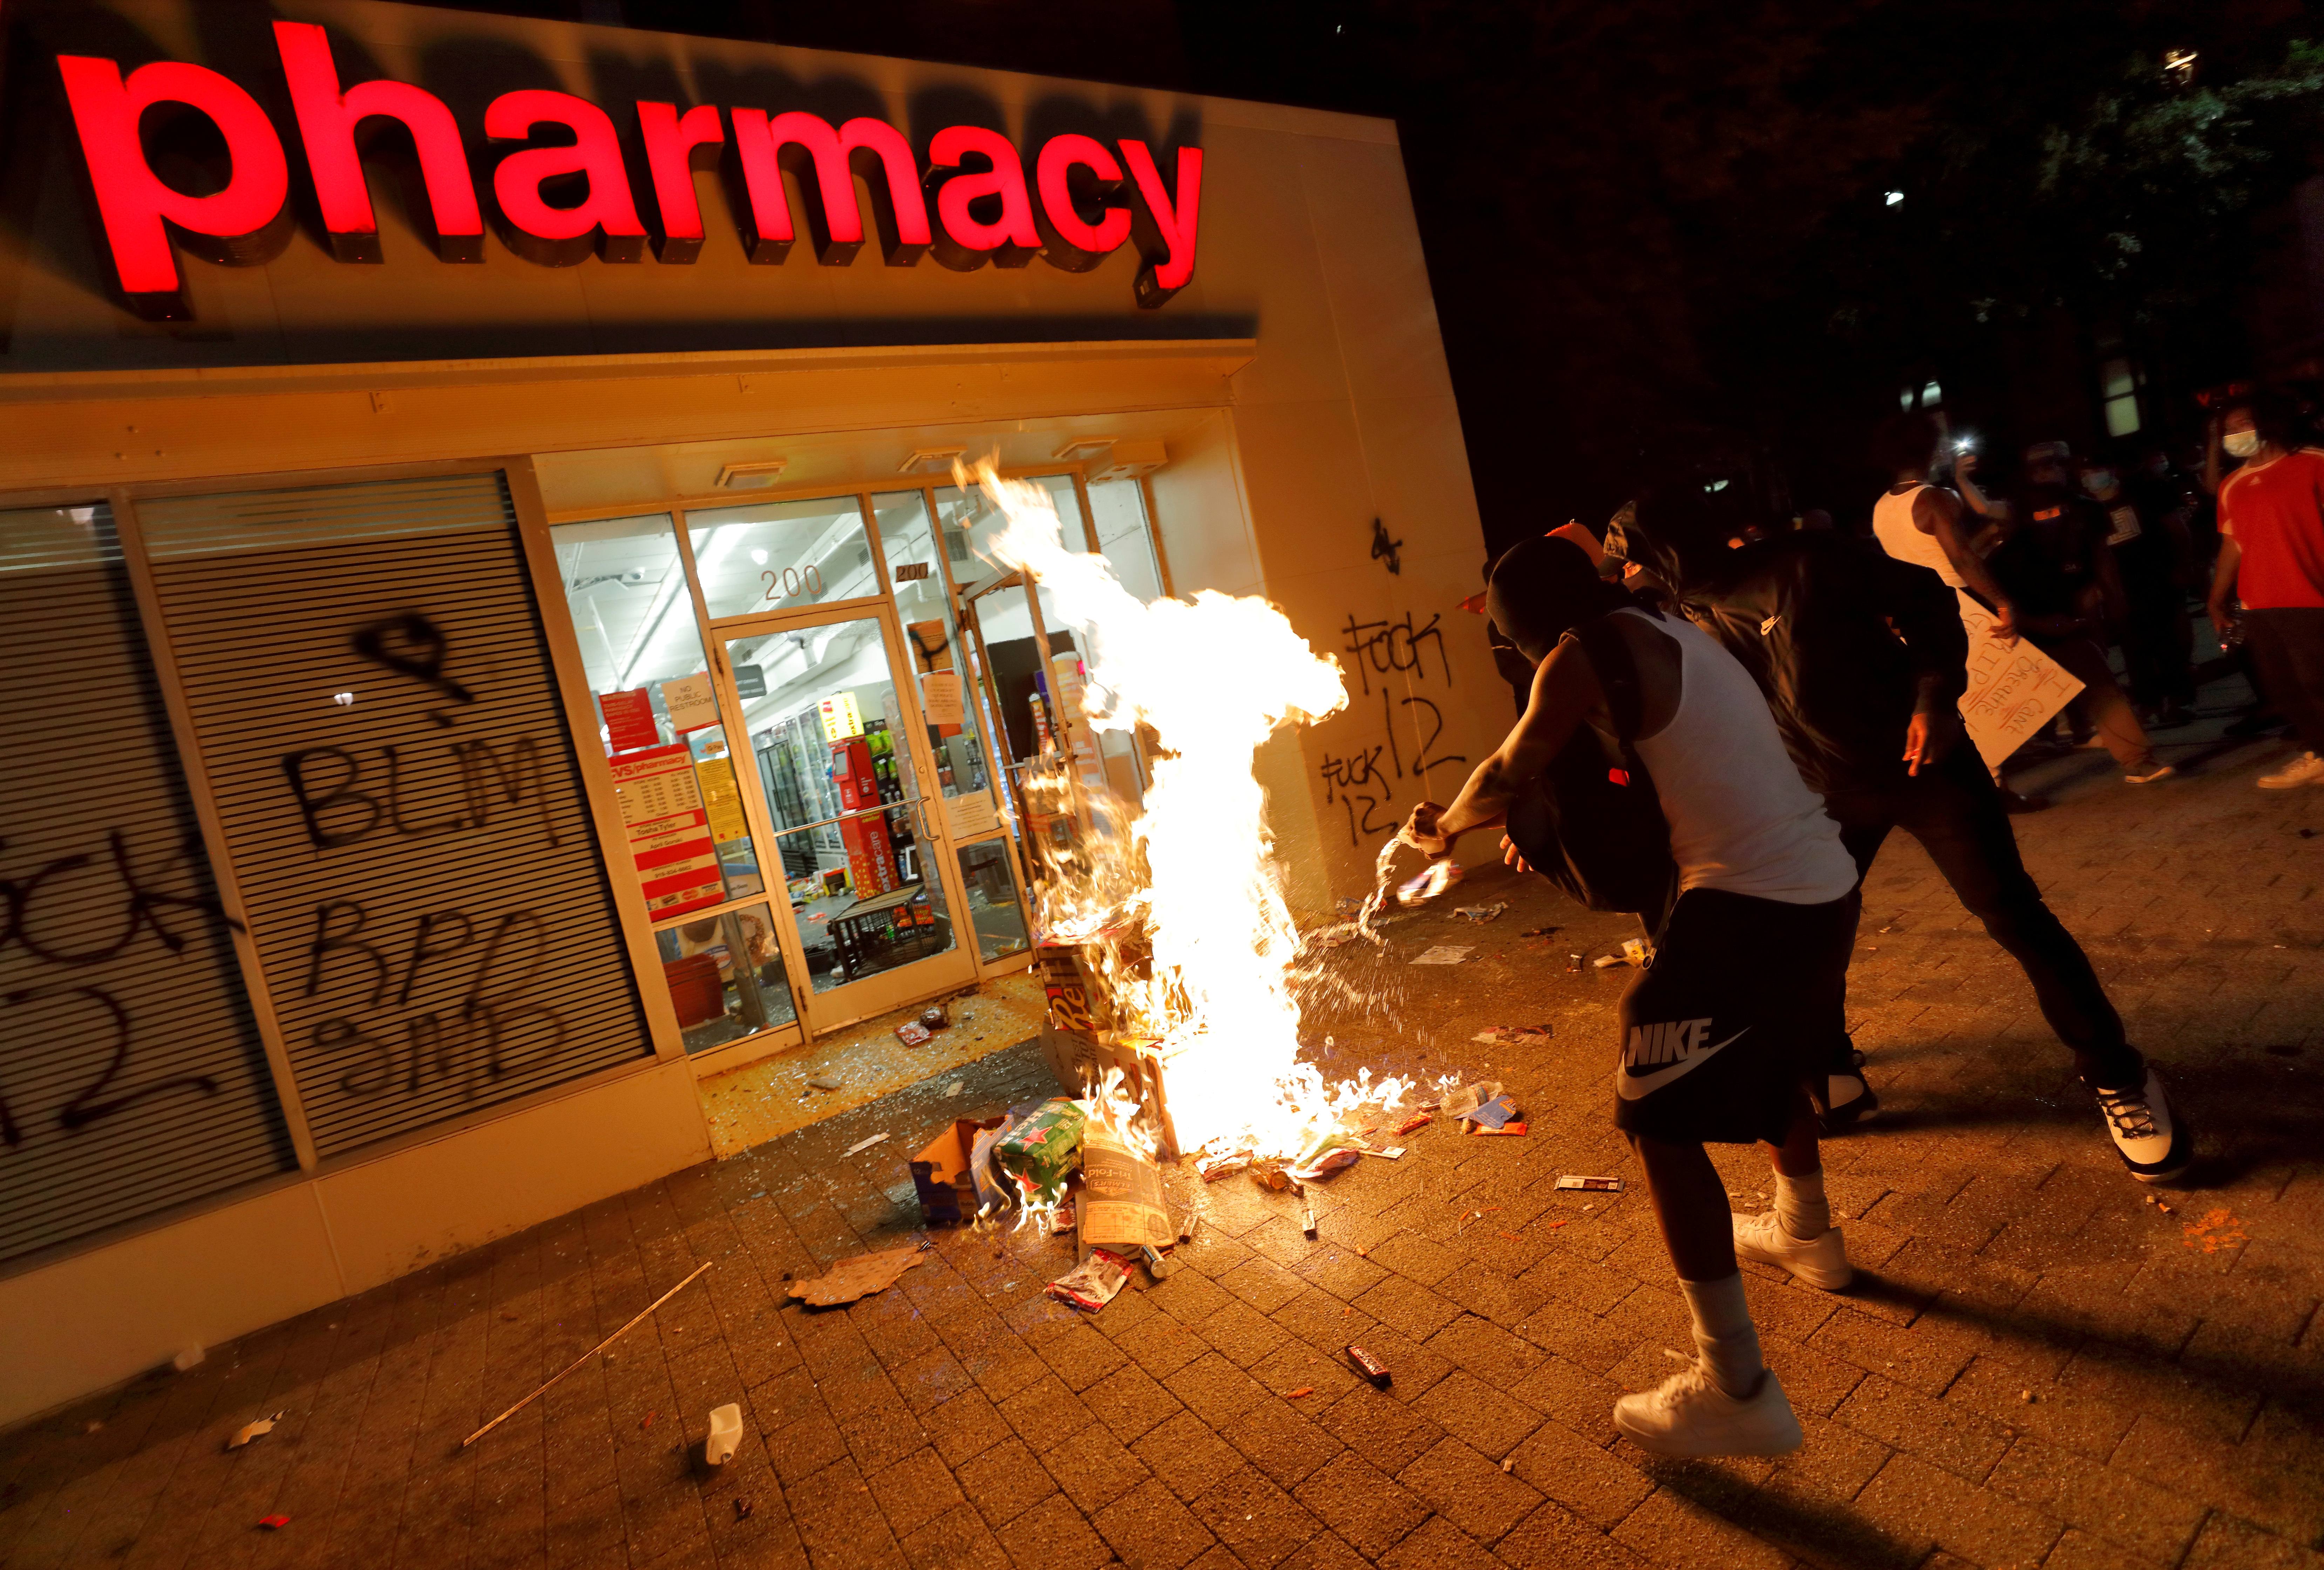 SENSITIVE MATERIAL. THIS IMAGE MAY OFFEND OR DISTURB People set fire to items looted from a CVS Pharmacy during nationwide unrest following the death in Minneapolis police custody of George Floyd, in Raleigh, North Carolina, U.S. May 30, 2020. Picture taken May 30, 2020. REUTERS/Jonathan Drake TPX IMAGES OF THE DAY